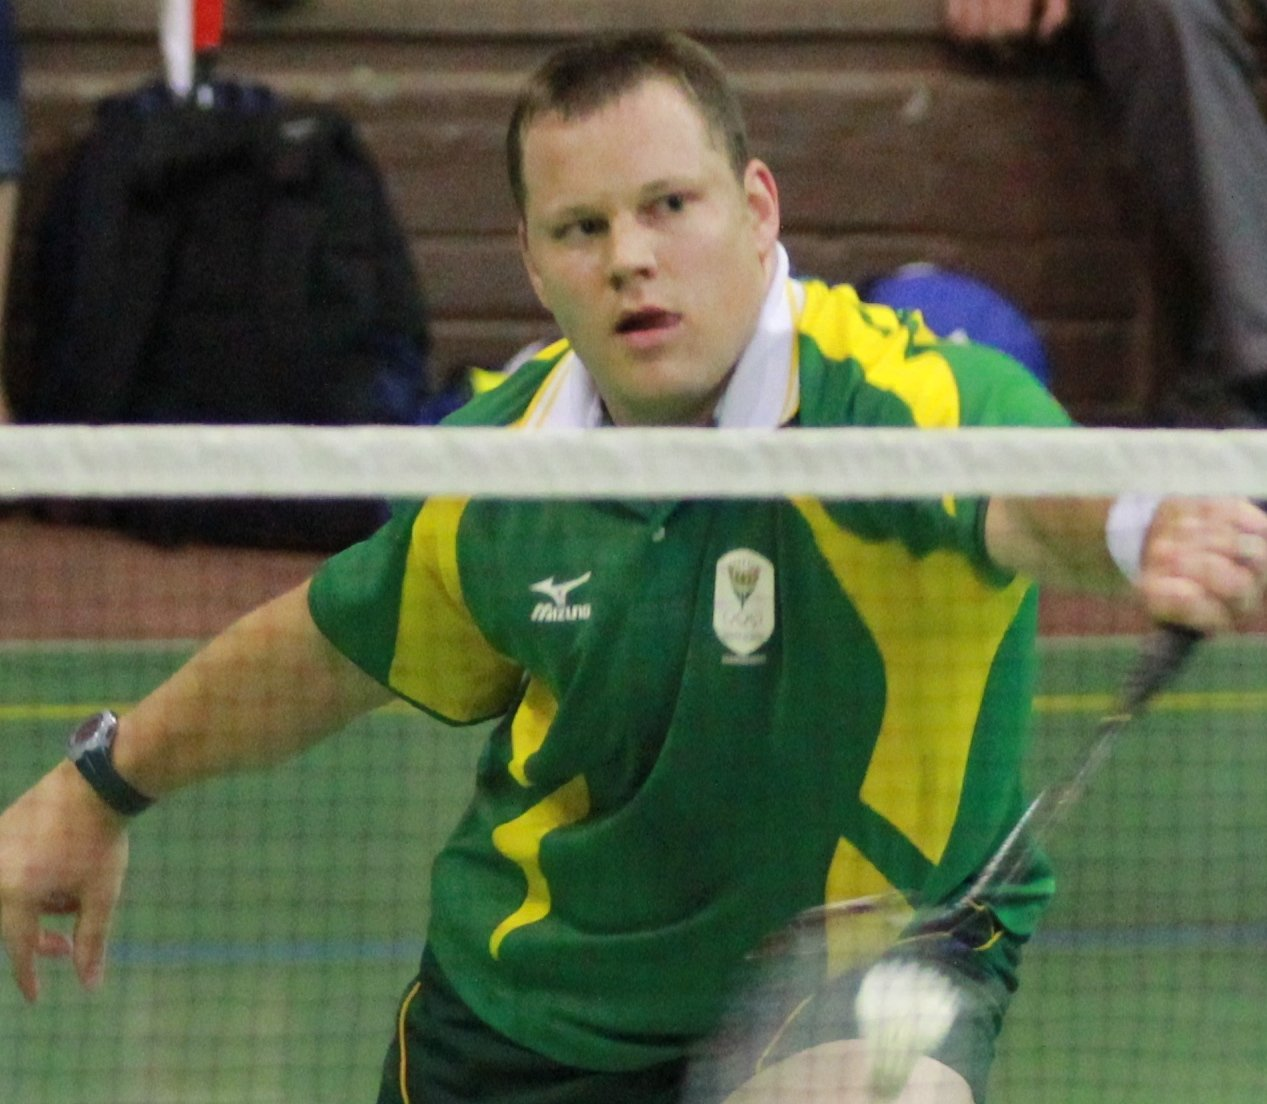 New coach Dednam on badminton's way forward